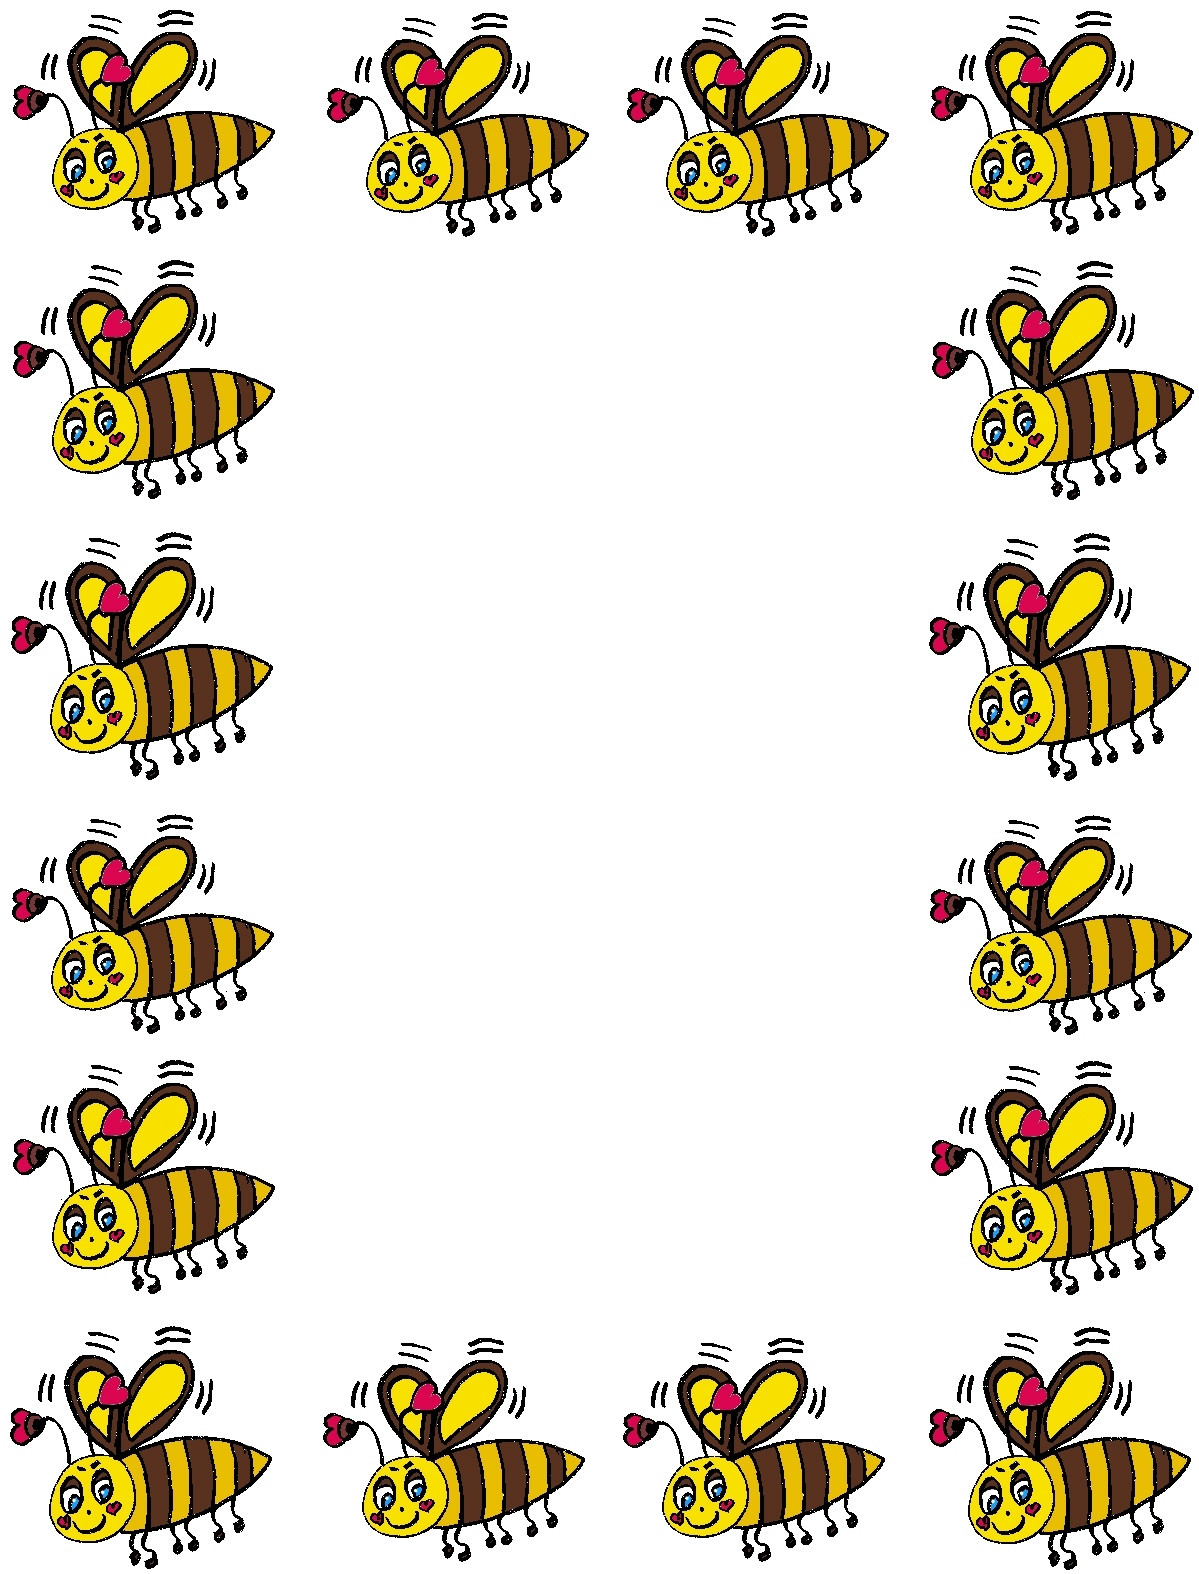 Bees clipart boarder. Free bee border cliparts